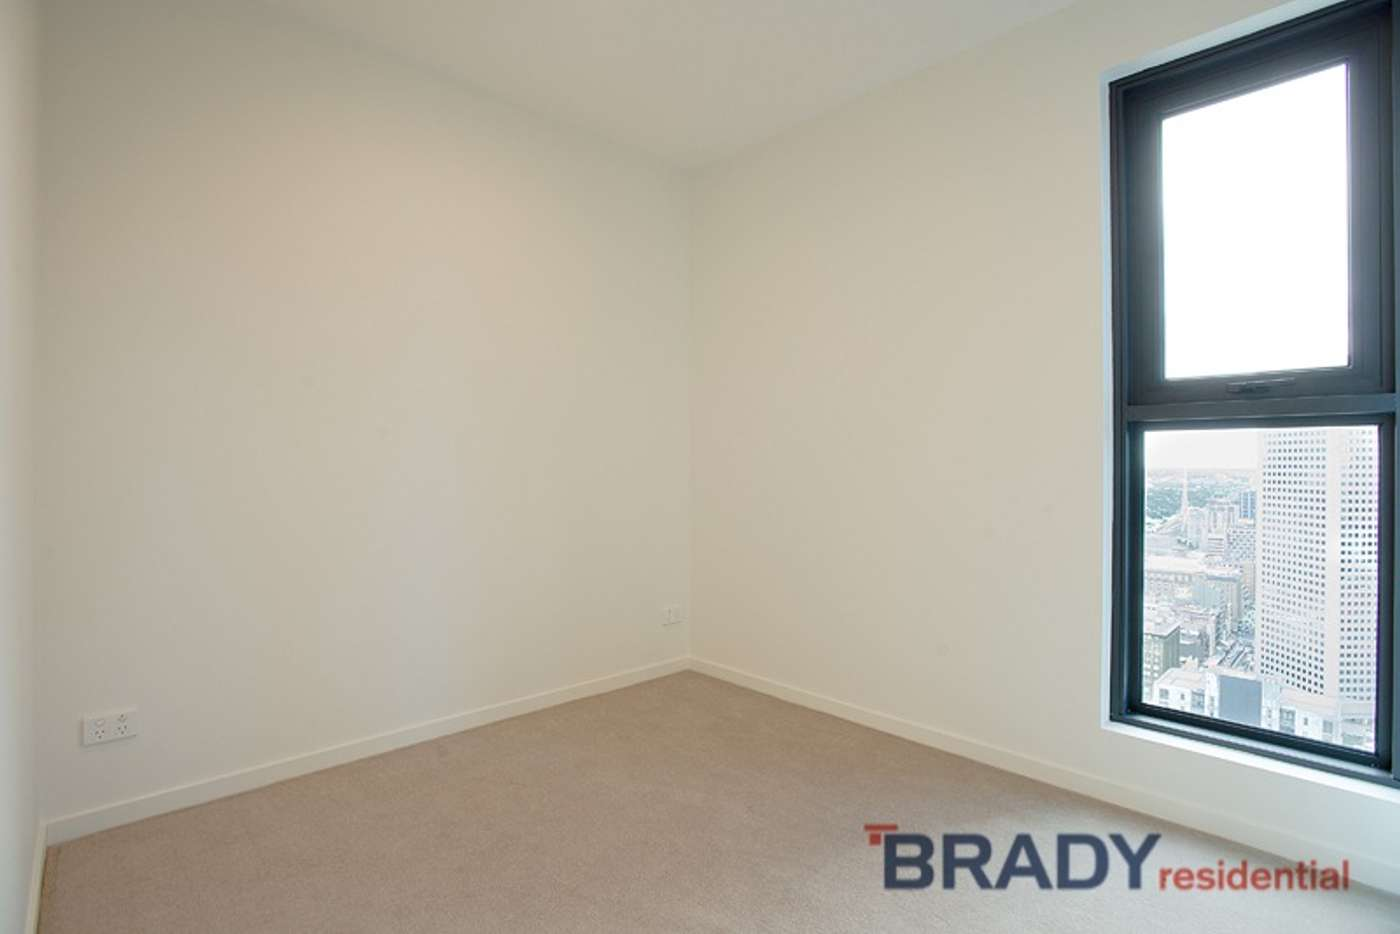 Sixth view of Homely apartment listing, 3801/8 Sutherland Street, Melbourne VIC 3000